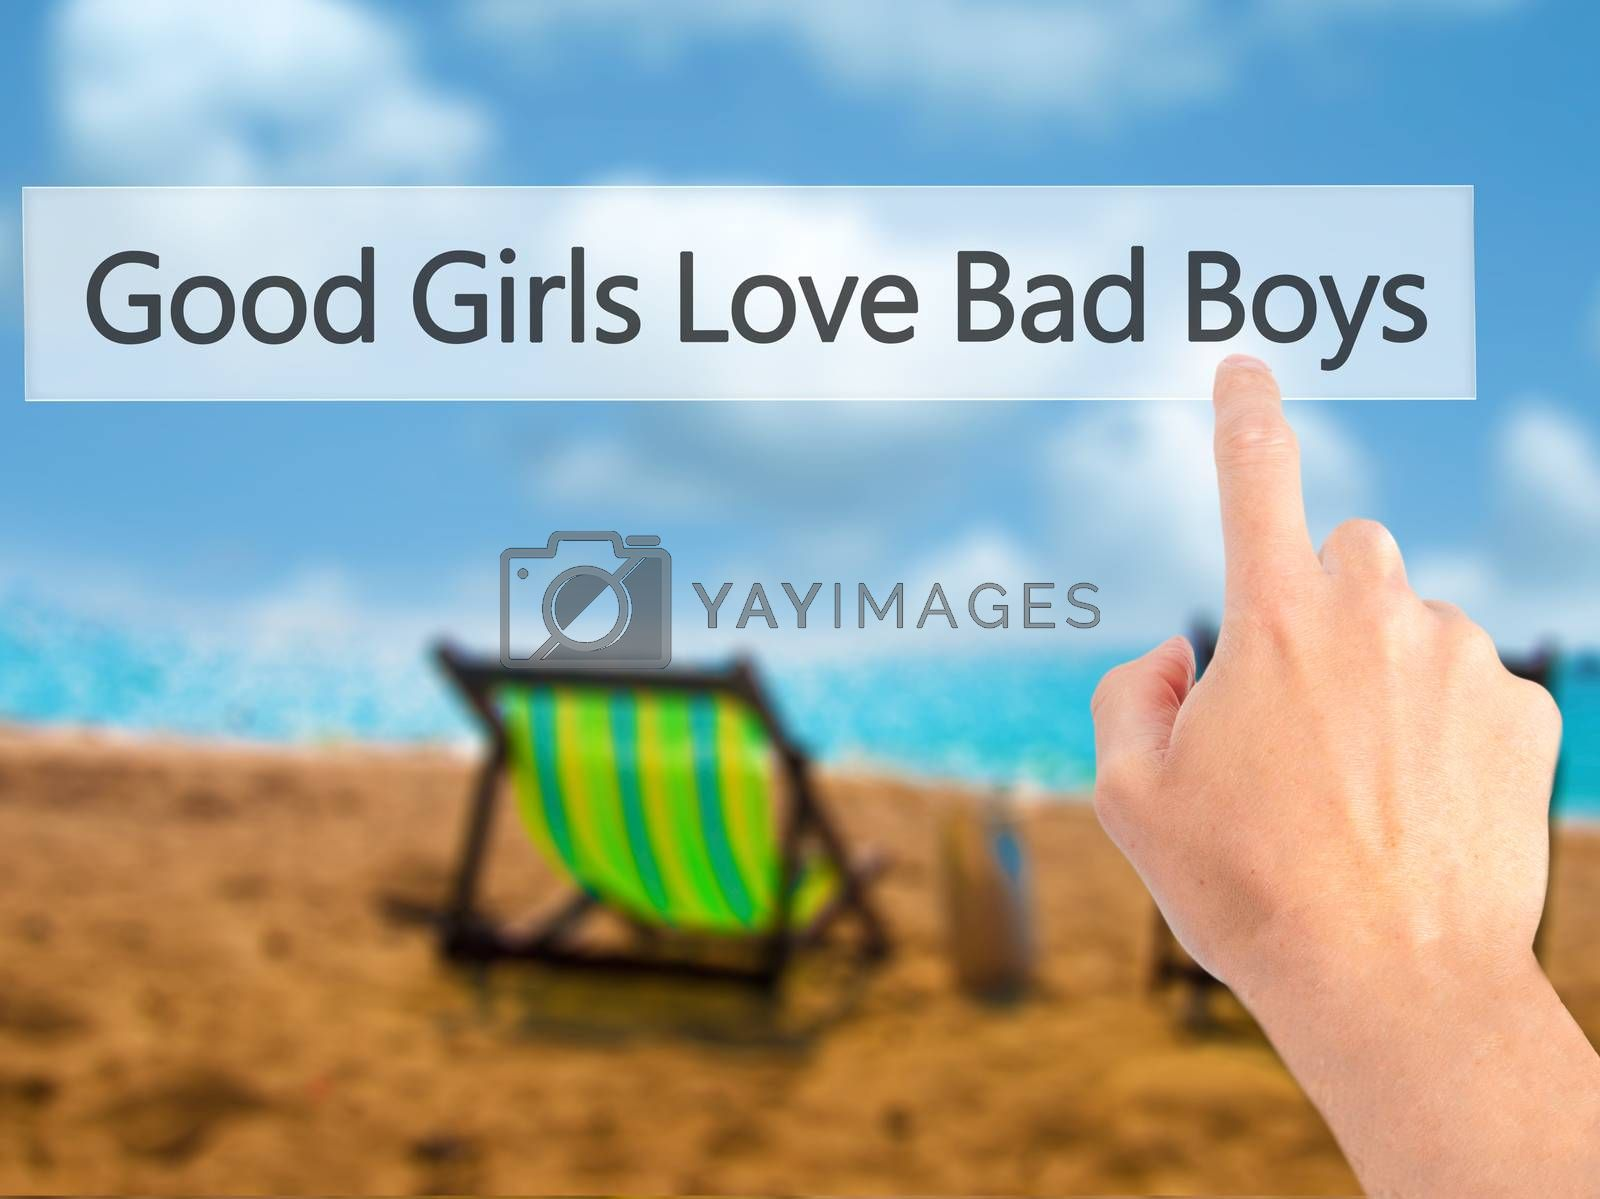 Good Girls Love Bad Boys - Hand pressing a button on blurred bac by jackald